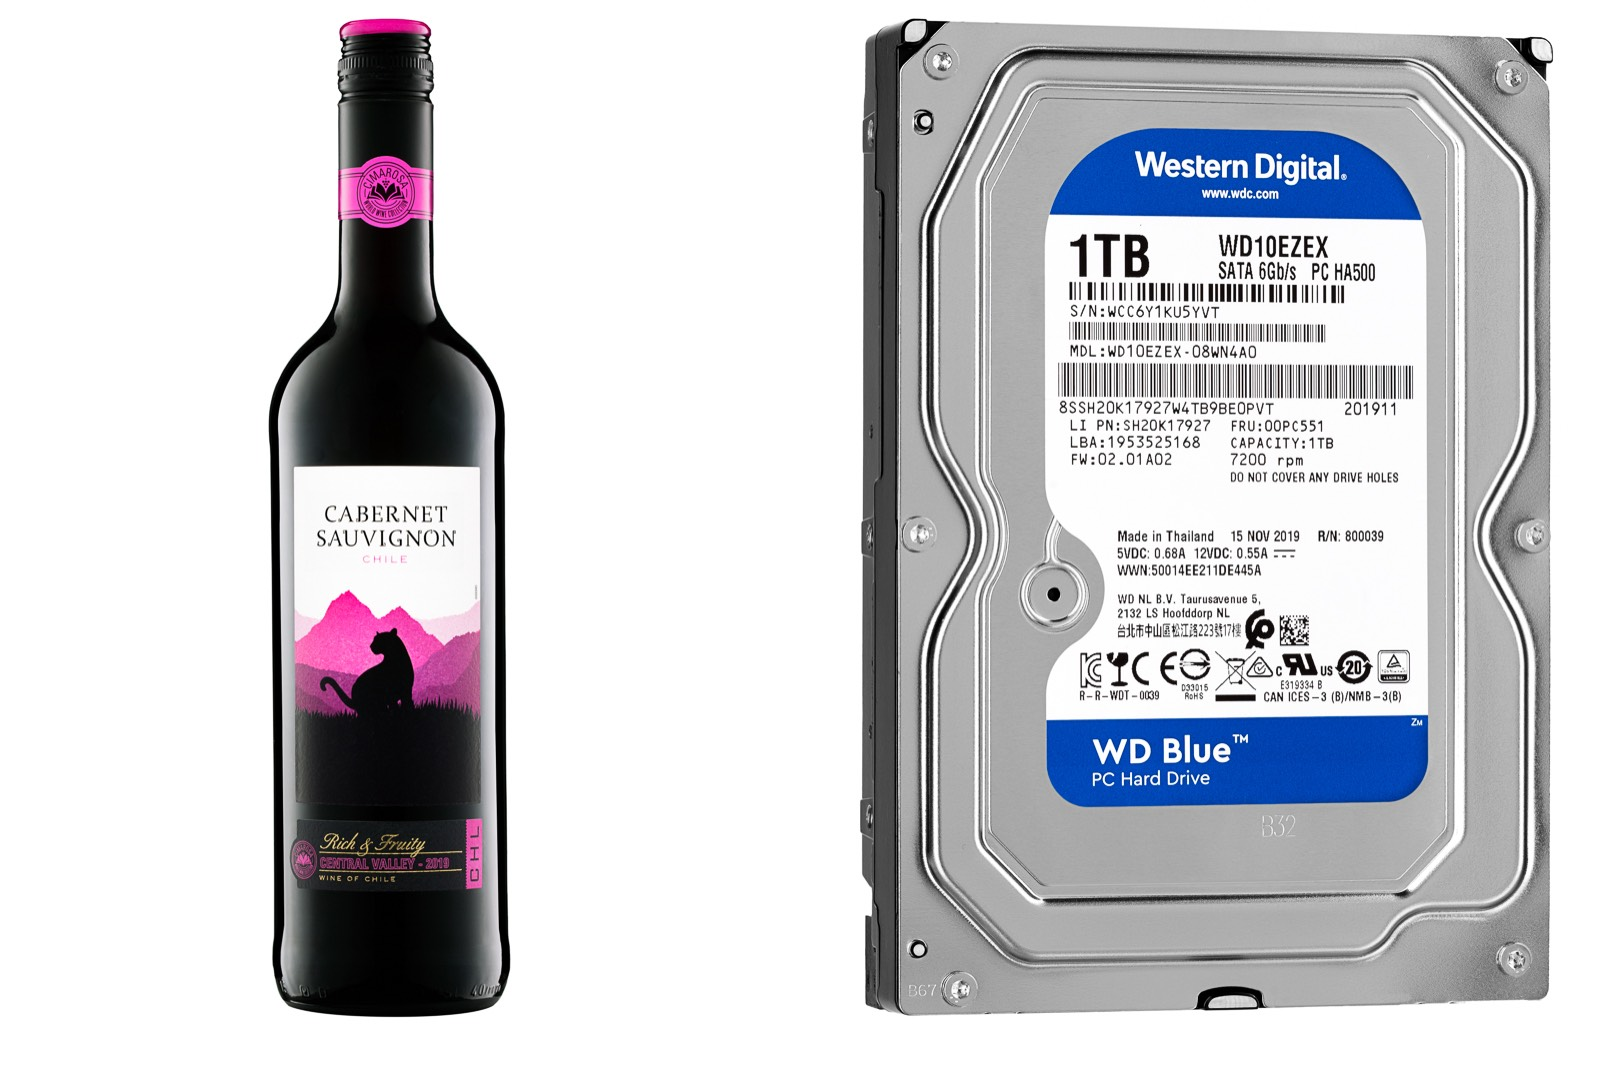 retail product photograph of red wine and western digital blue 1TB PC Hard Drive